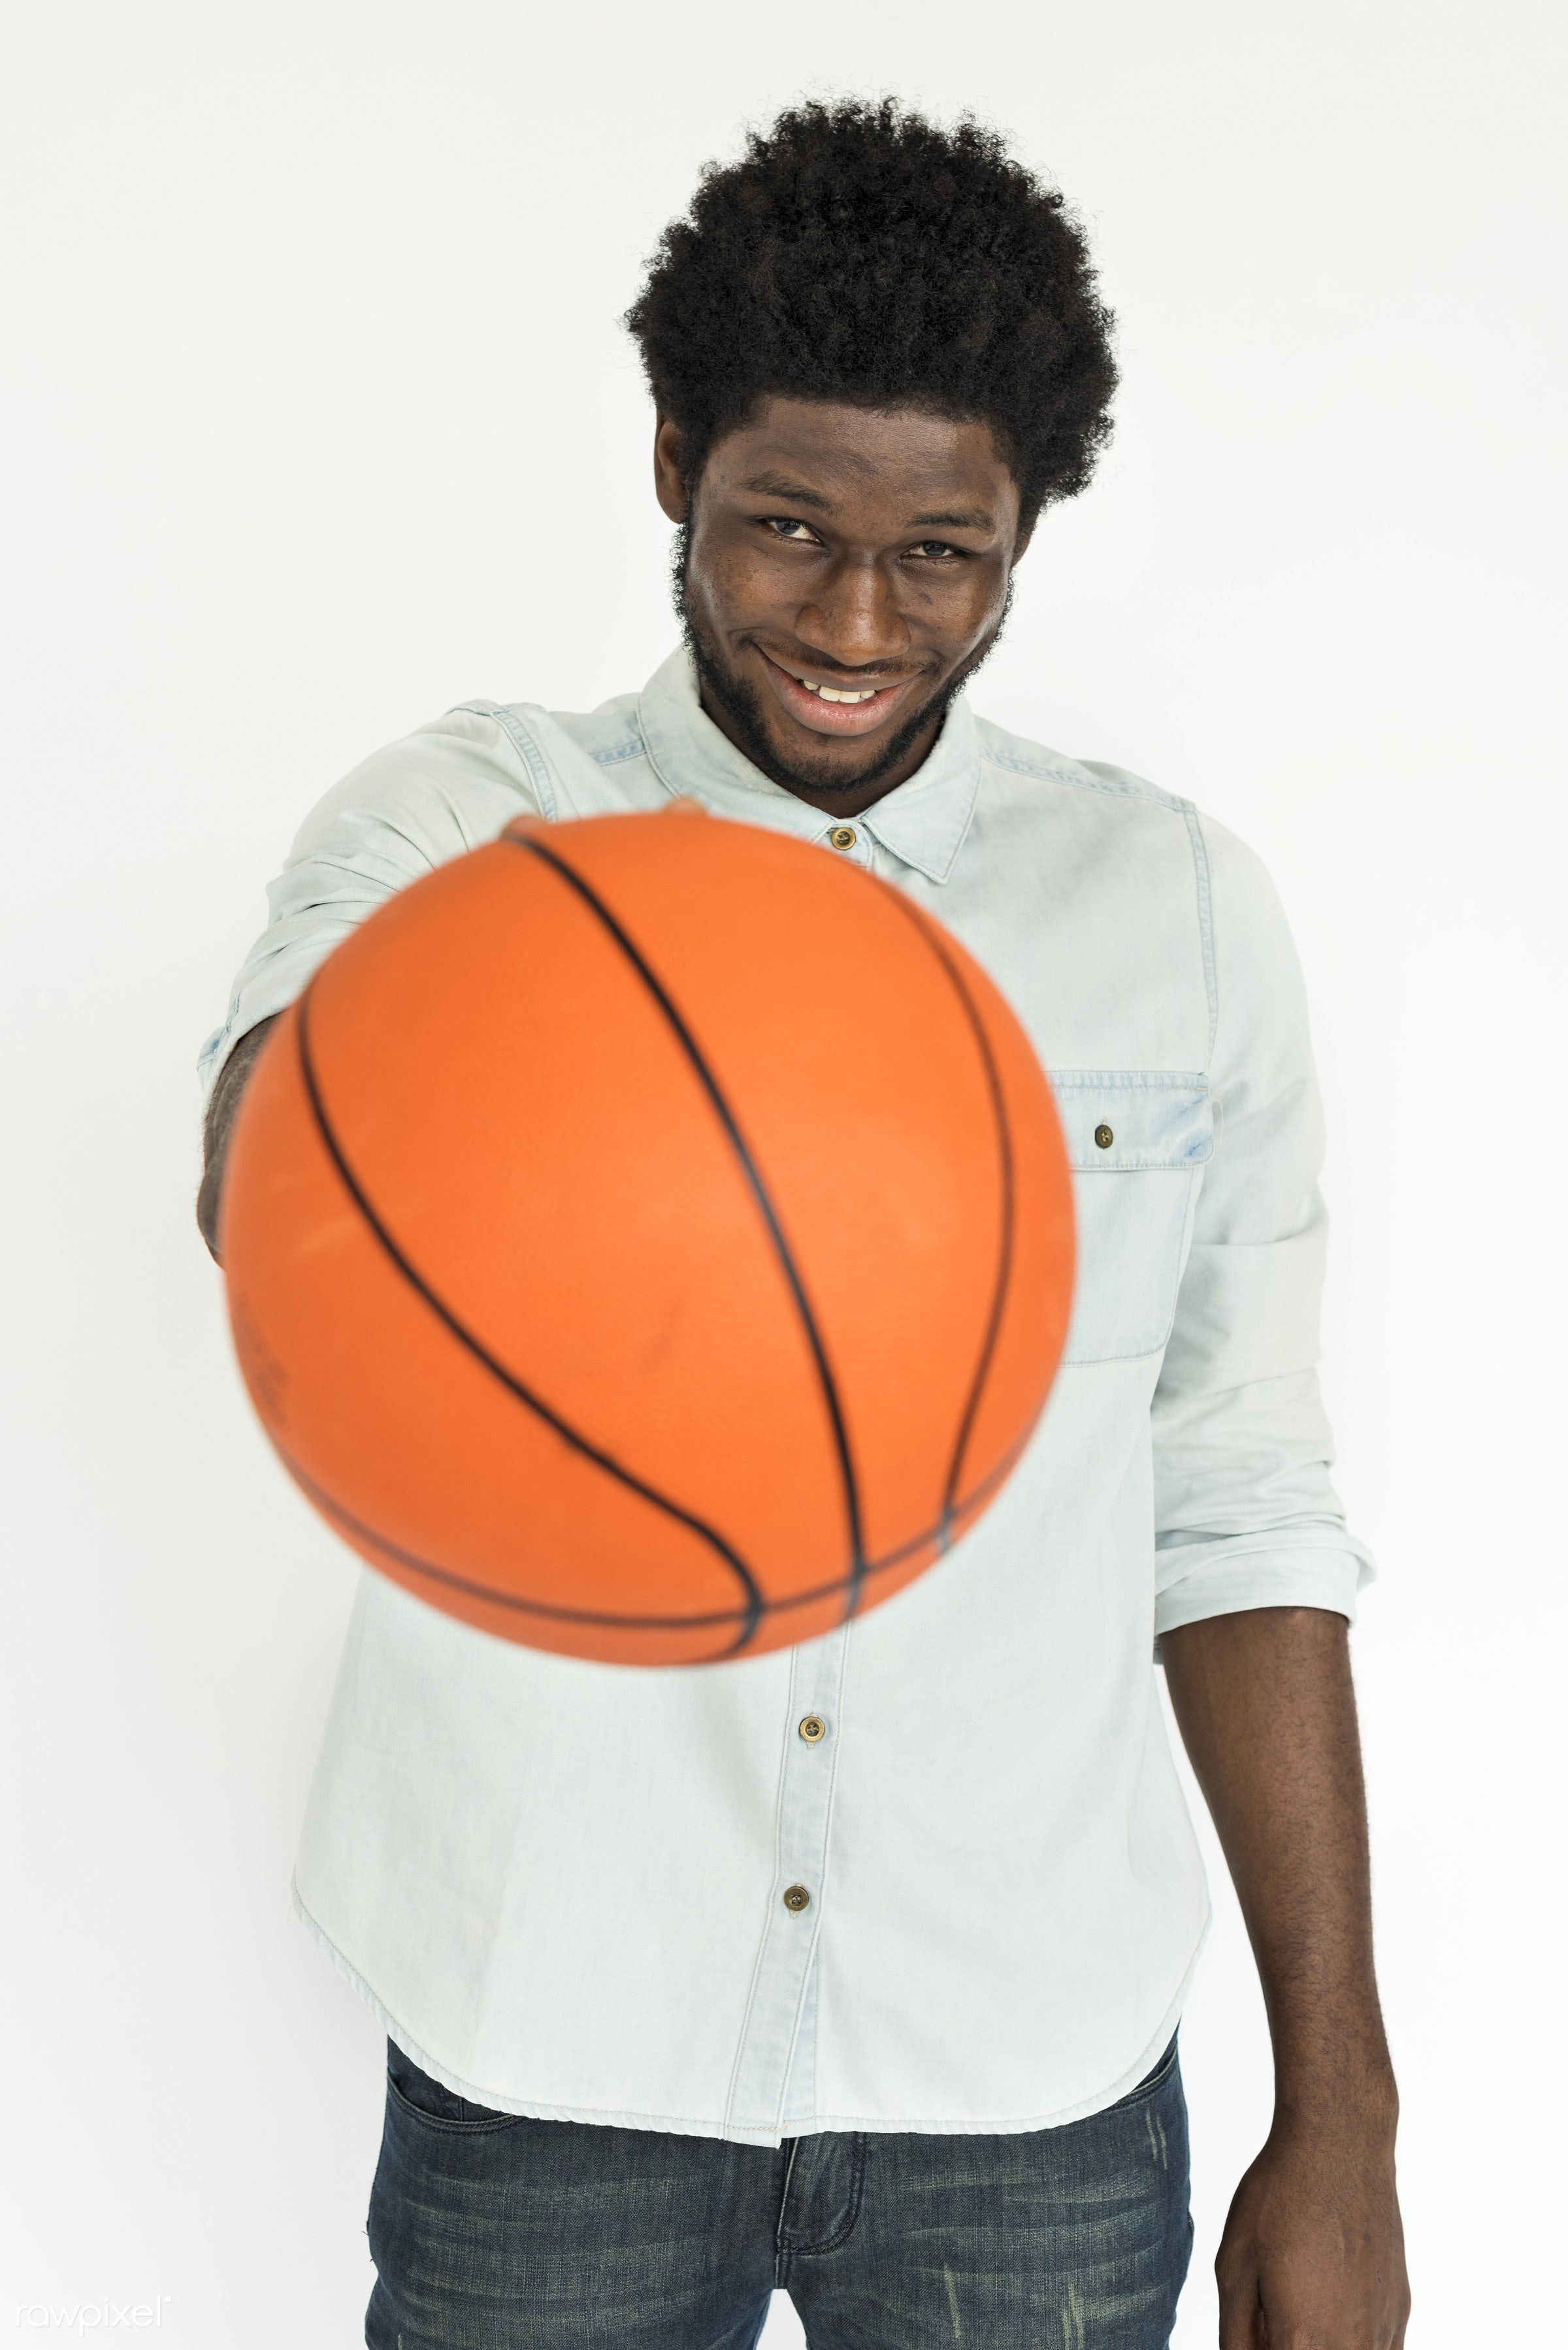 expression, basketball, studio, face, person, isolated on white, joy, carefree, people, laughing, fresh, happy, casual,...